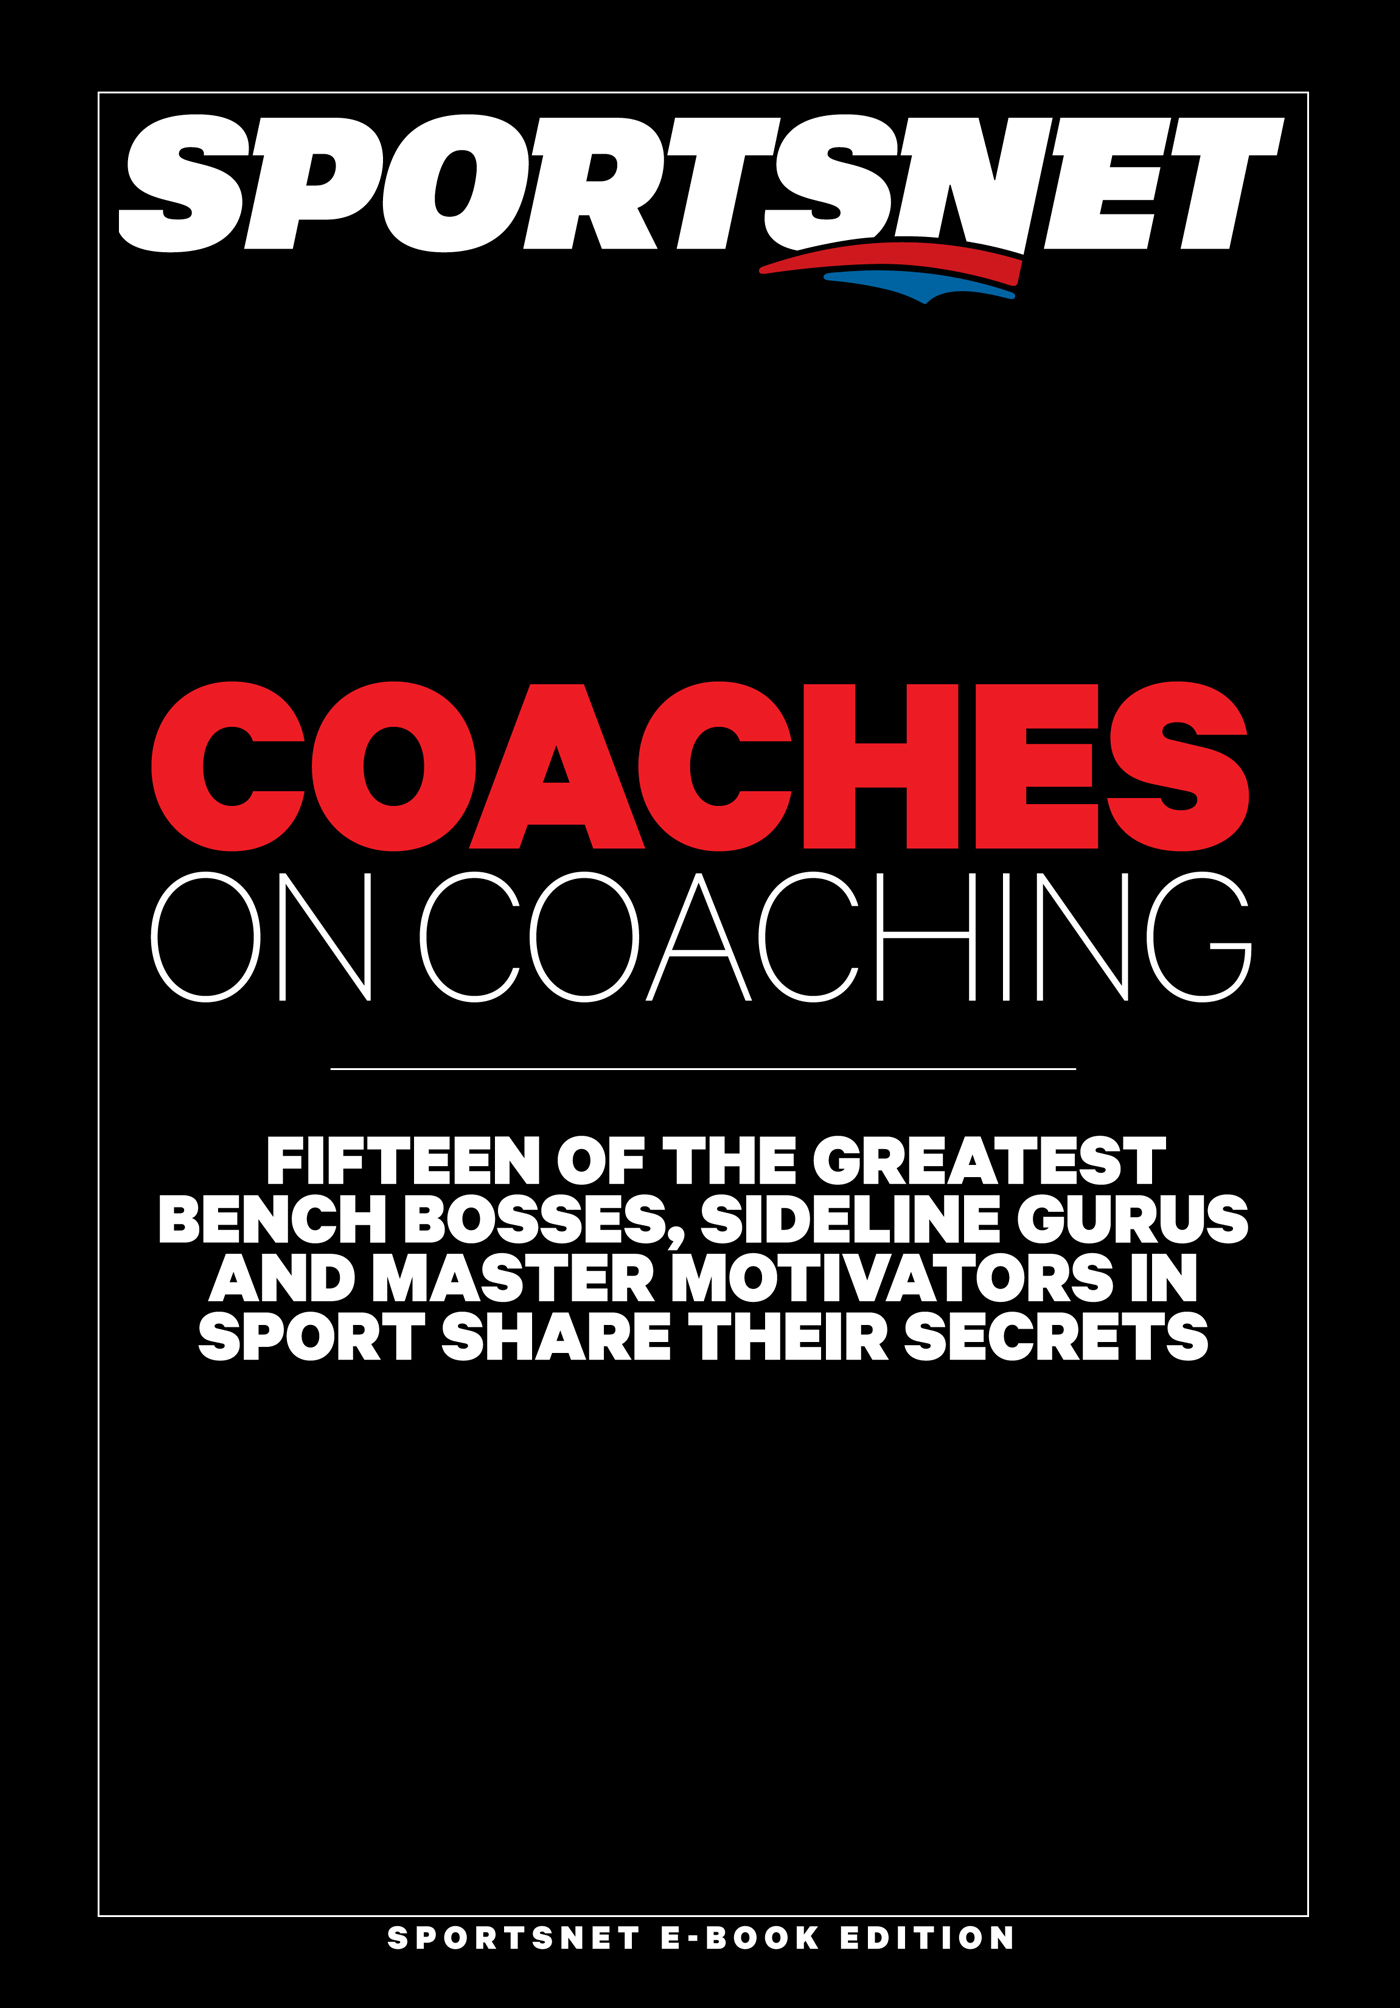 Coaches on Coaching